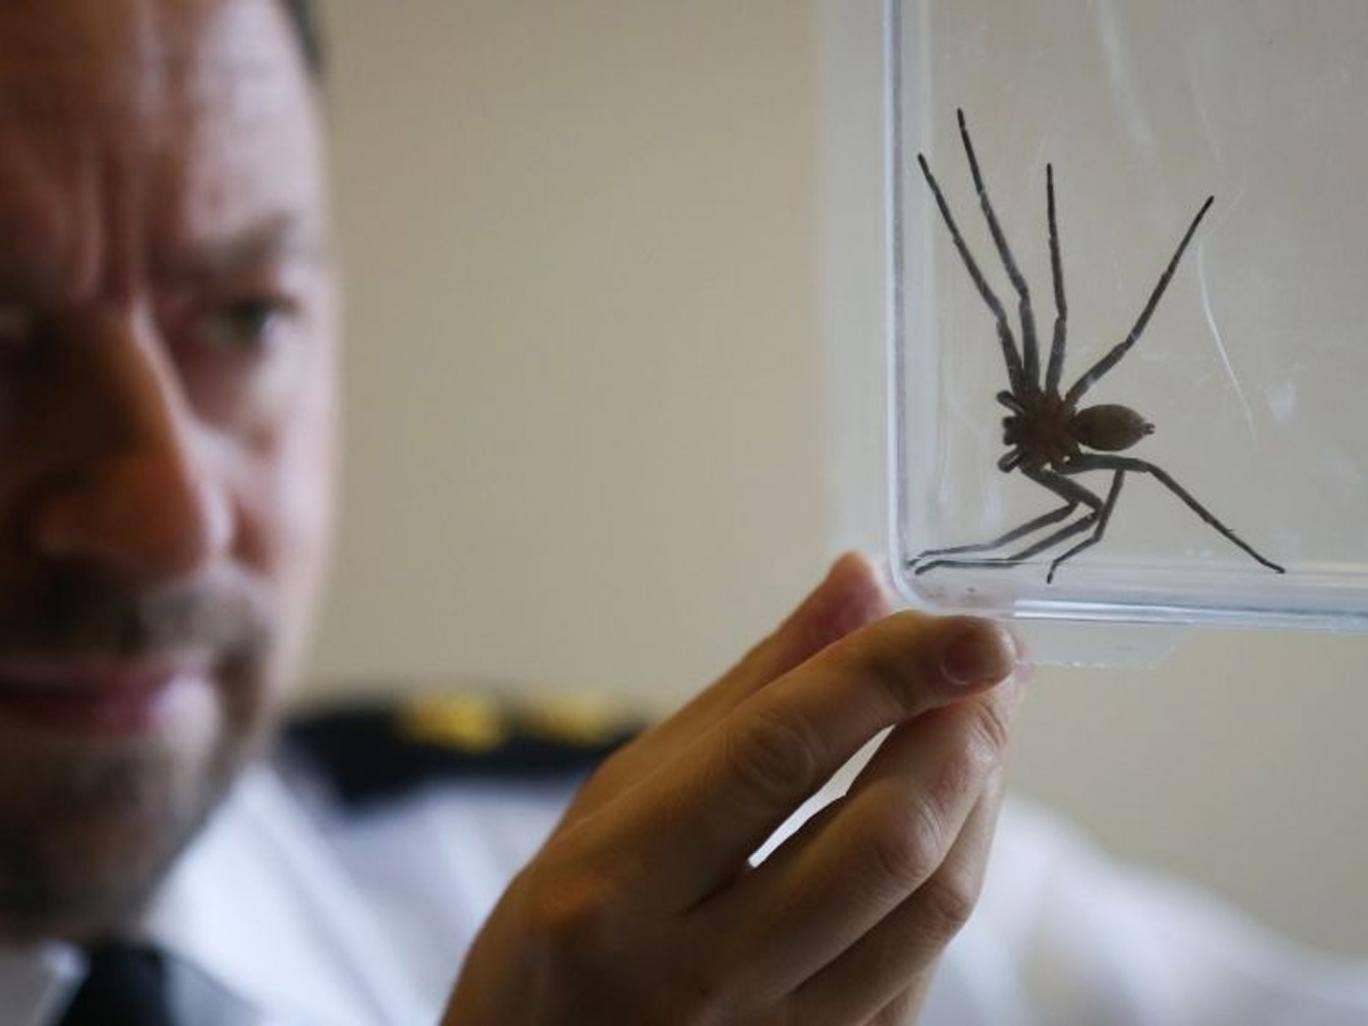 RSPCA Inspector Tony Woodley holds a seven-inch-long huntsman spider, common to Australia, which was discovered in a delivery at St Leonards-on-Sea